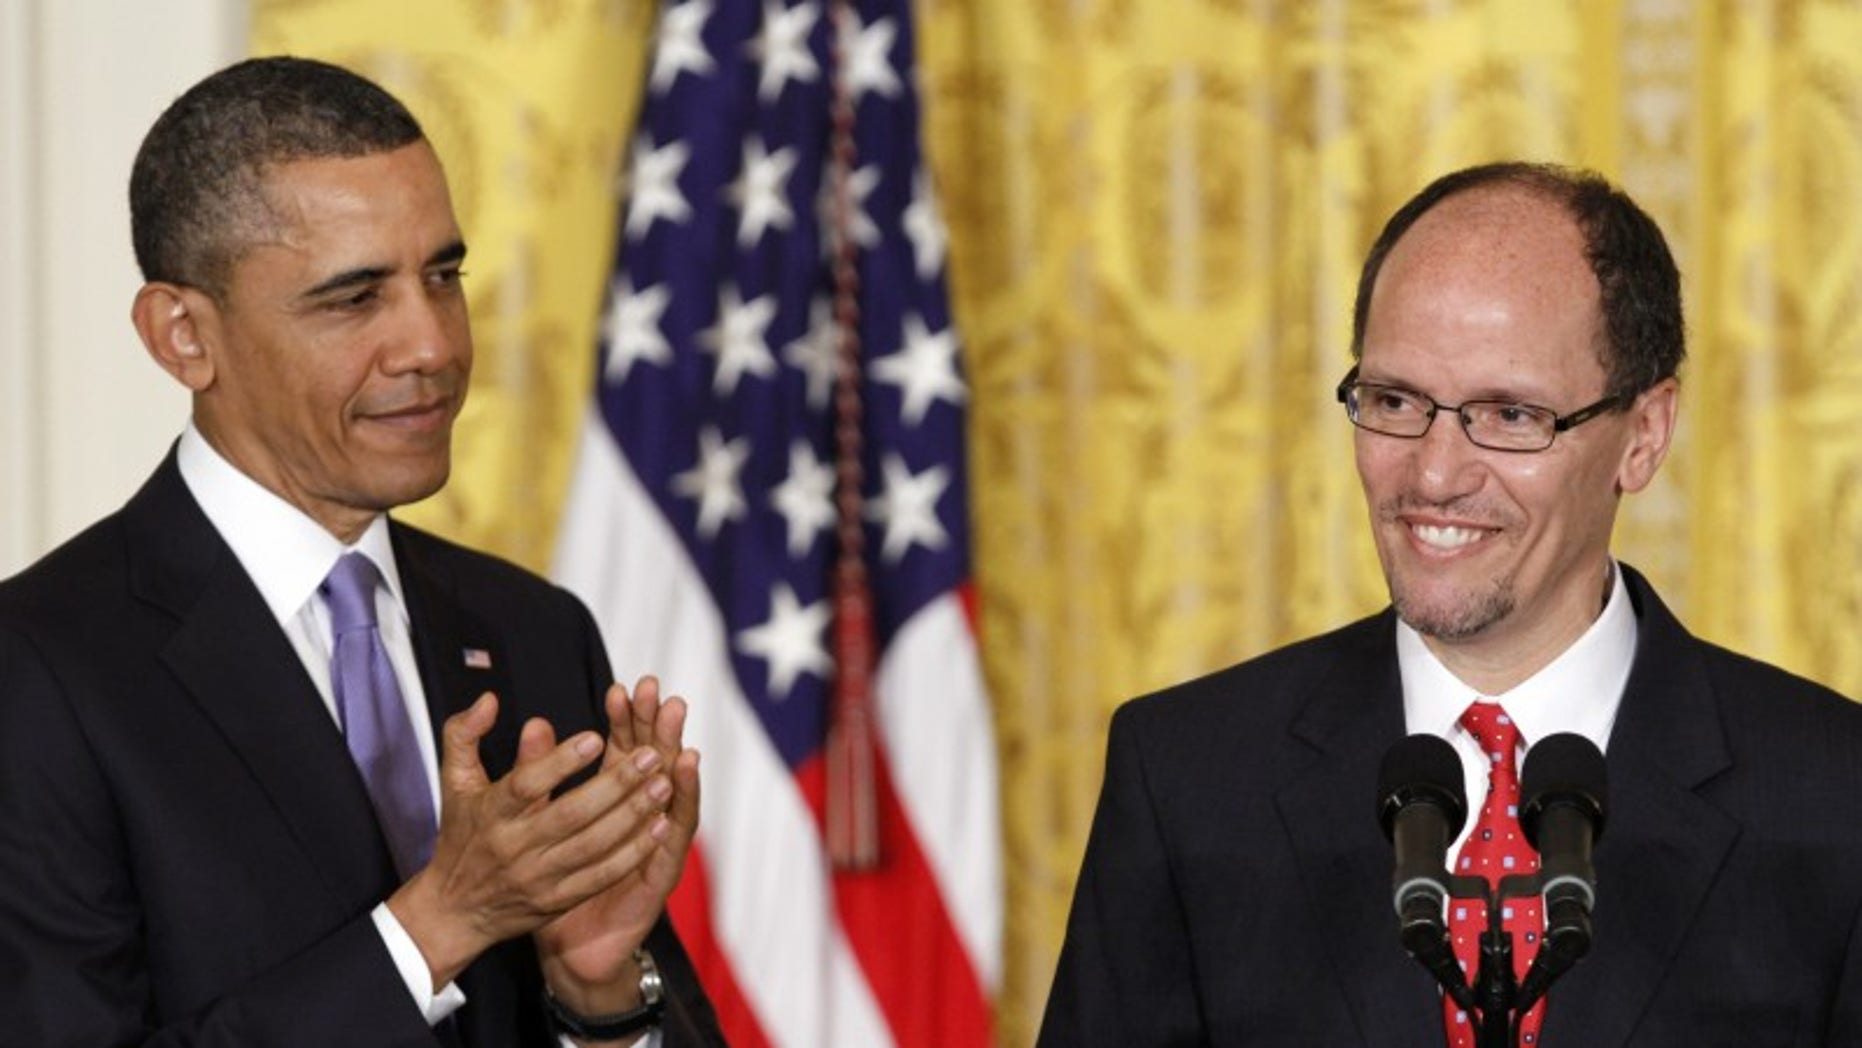 President Barack Obama applauds in the East Room of the White House in Washington, Monday March 18, 2013, where he announced he would nominate Thomas E. Perez, right, for Labor Secretary.  (AP Photo/Jacquelyn Martin)